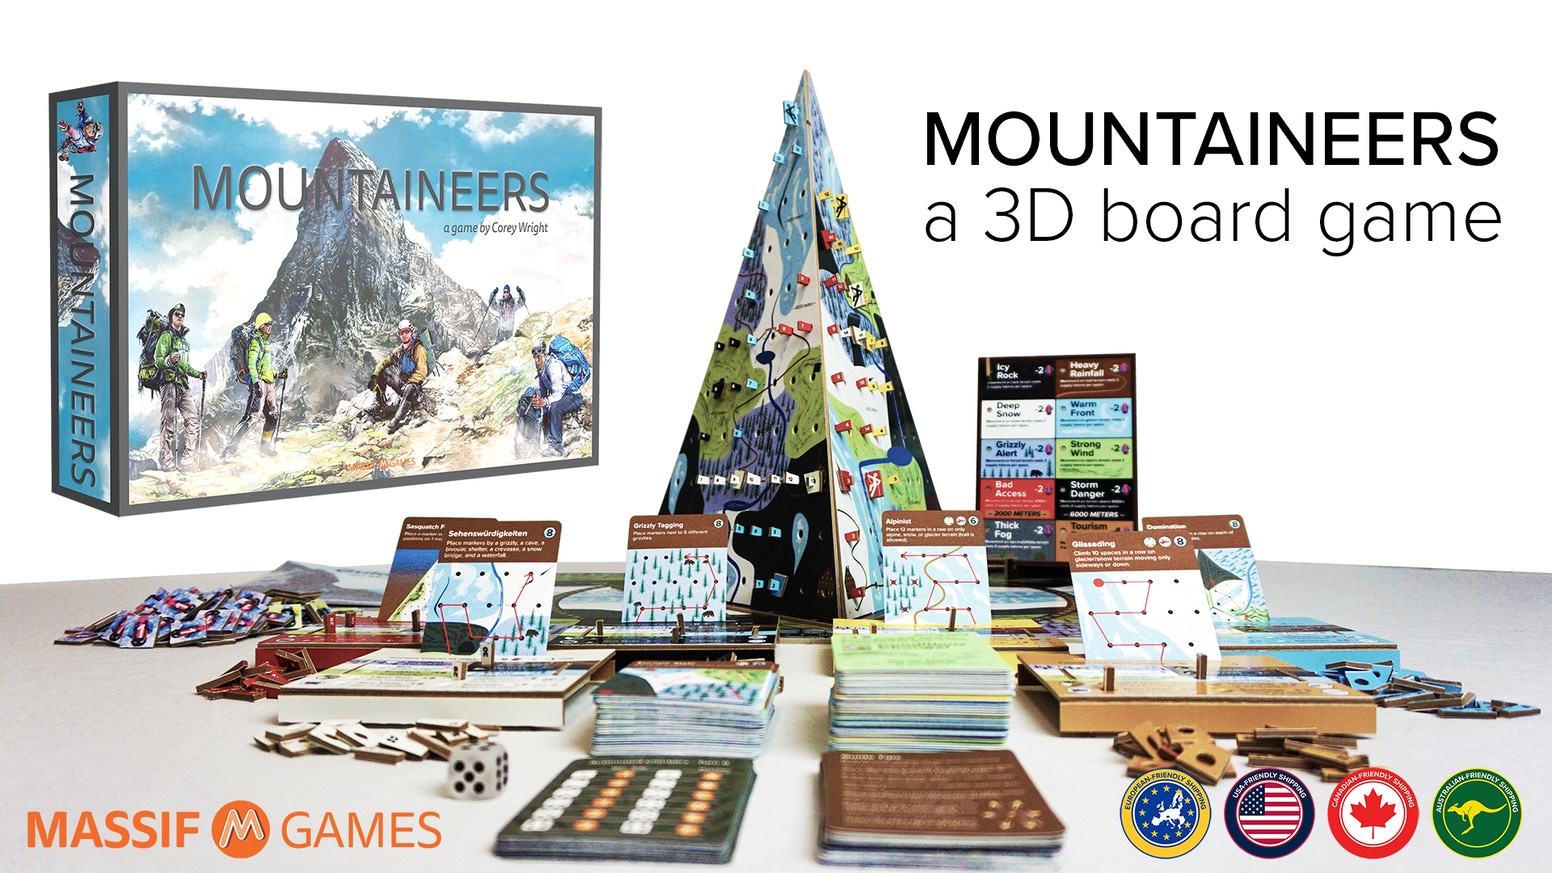 My Mountaineer Card >> Mountaineers A 3d Board Game By Corey Wright Kickstarter